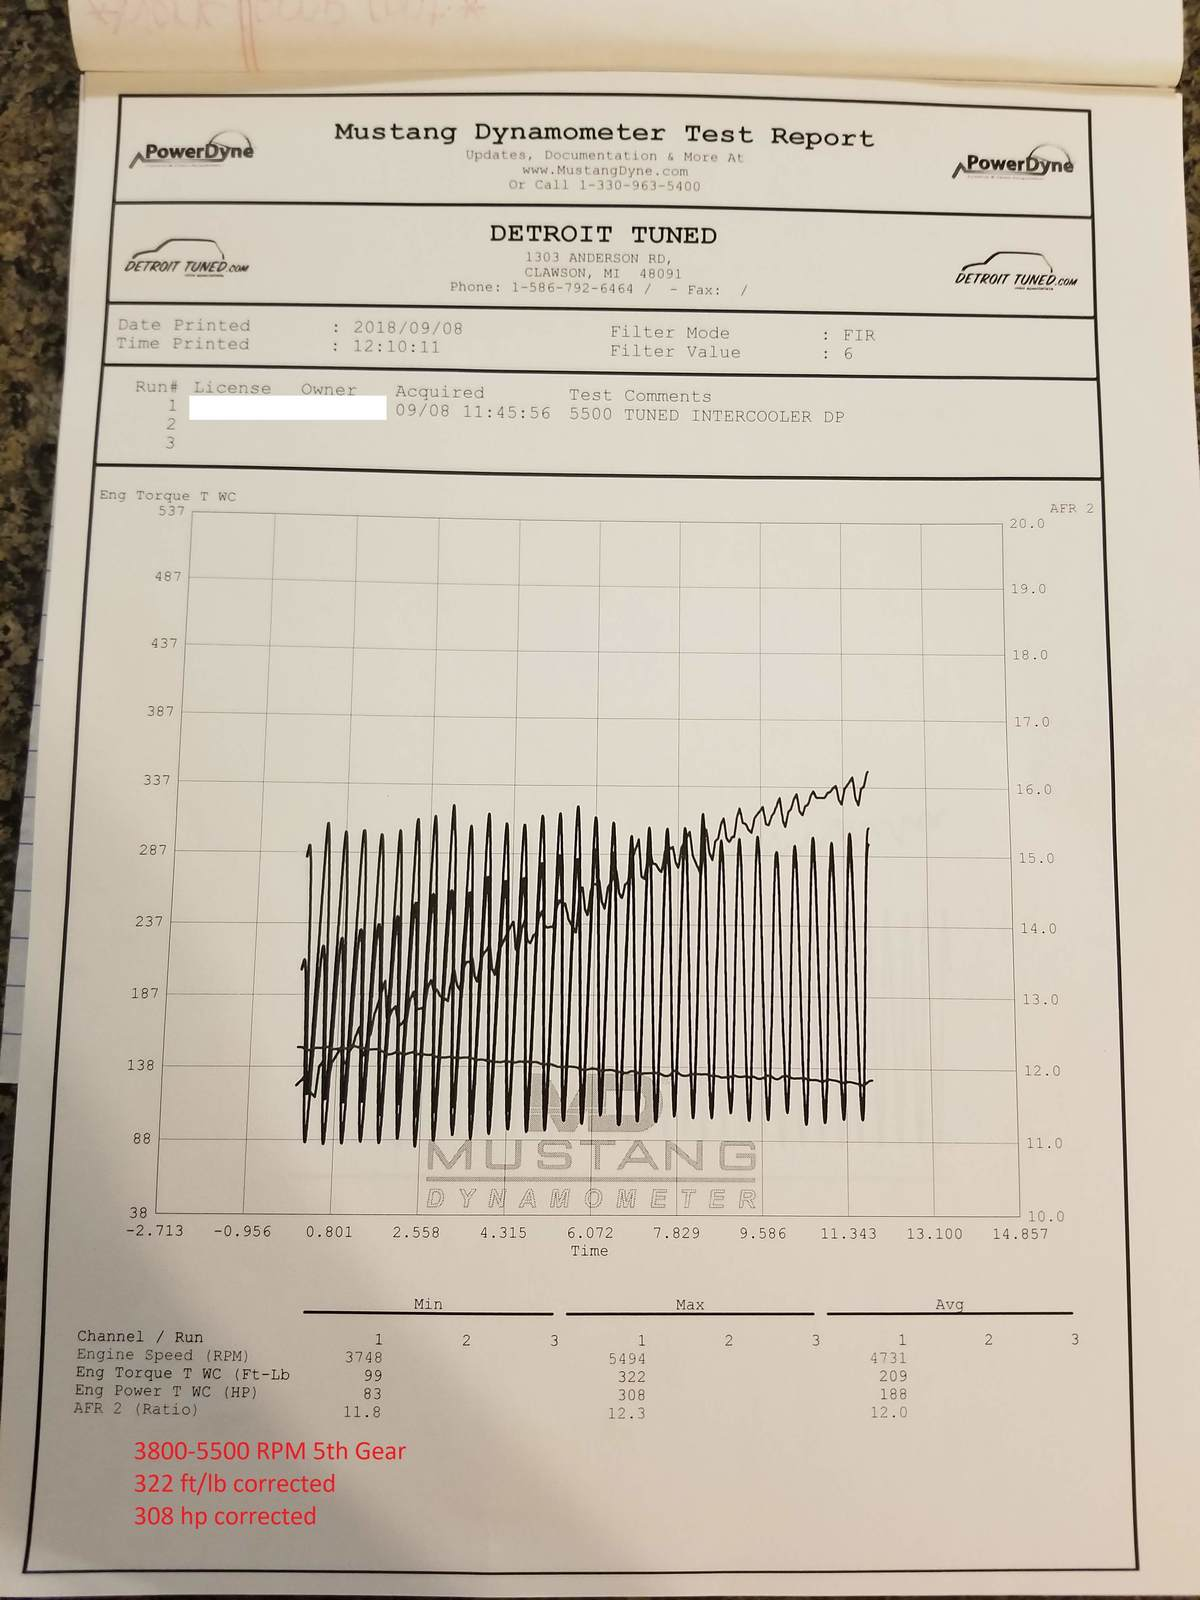 Ford Fusion Dyno Graph Results